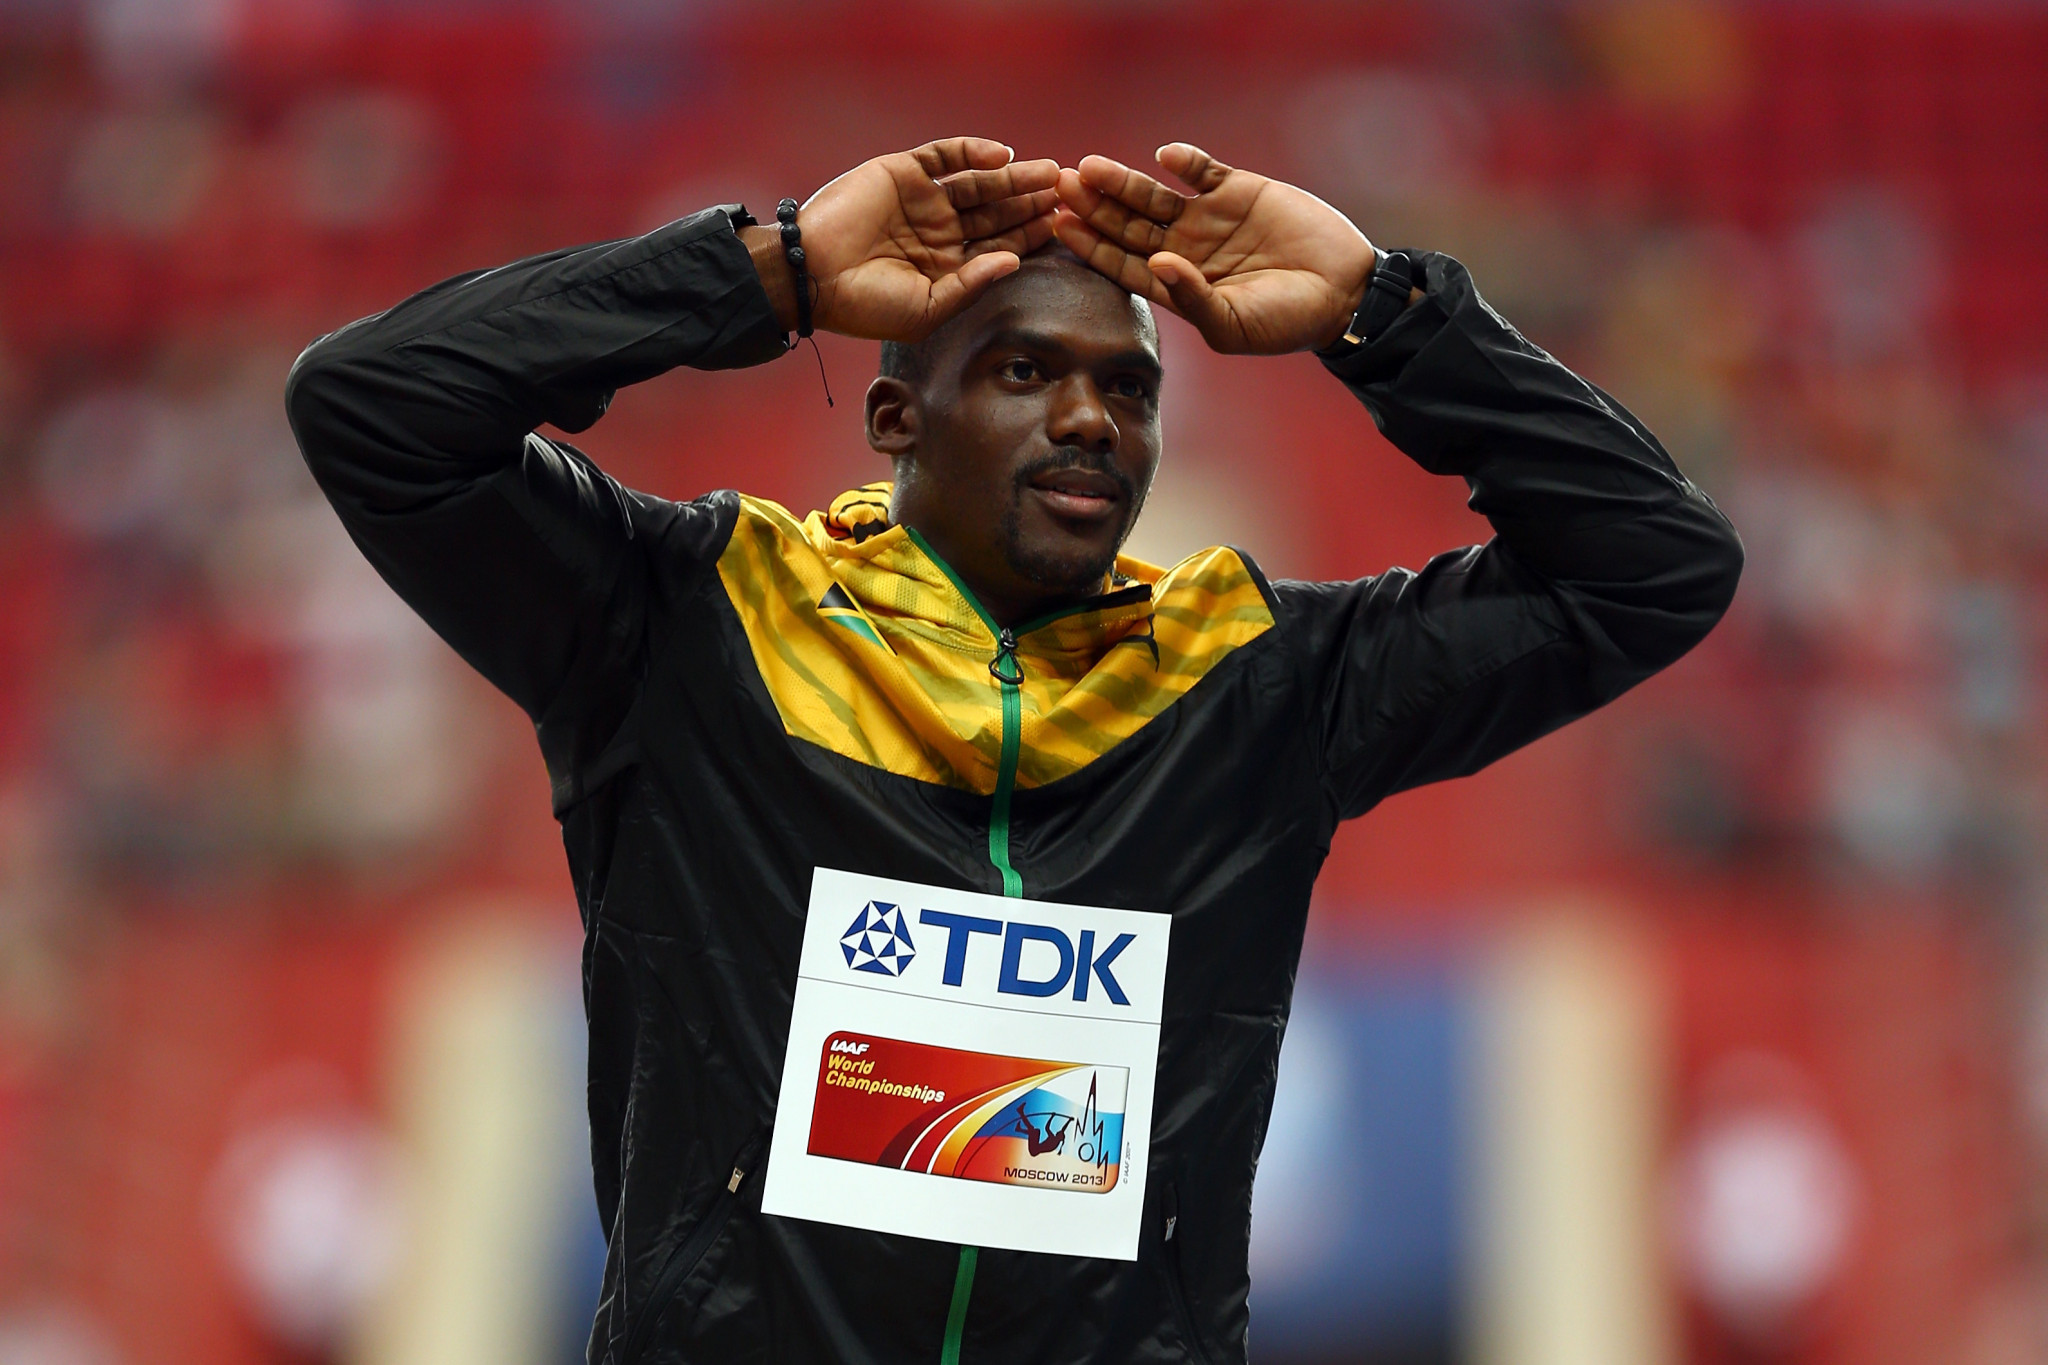 Jamaican sprinter Carter tests positive for banned substance again